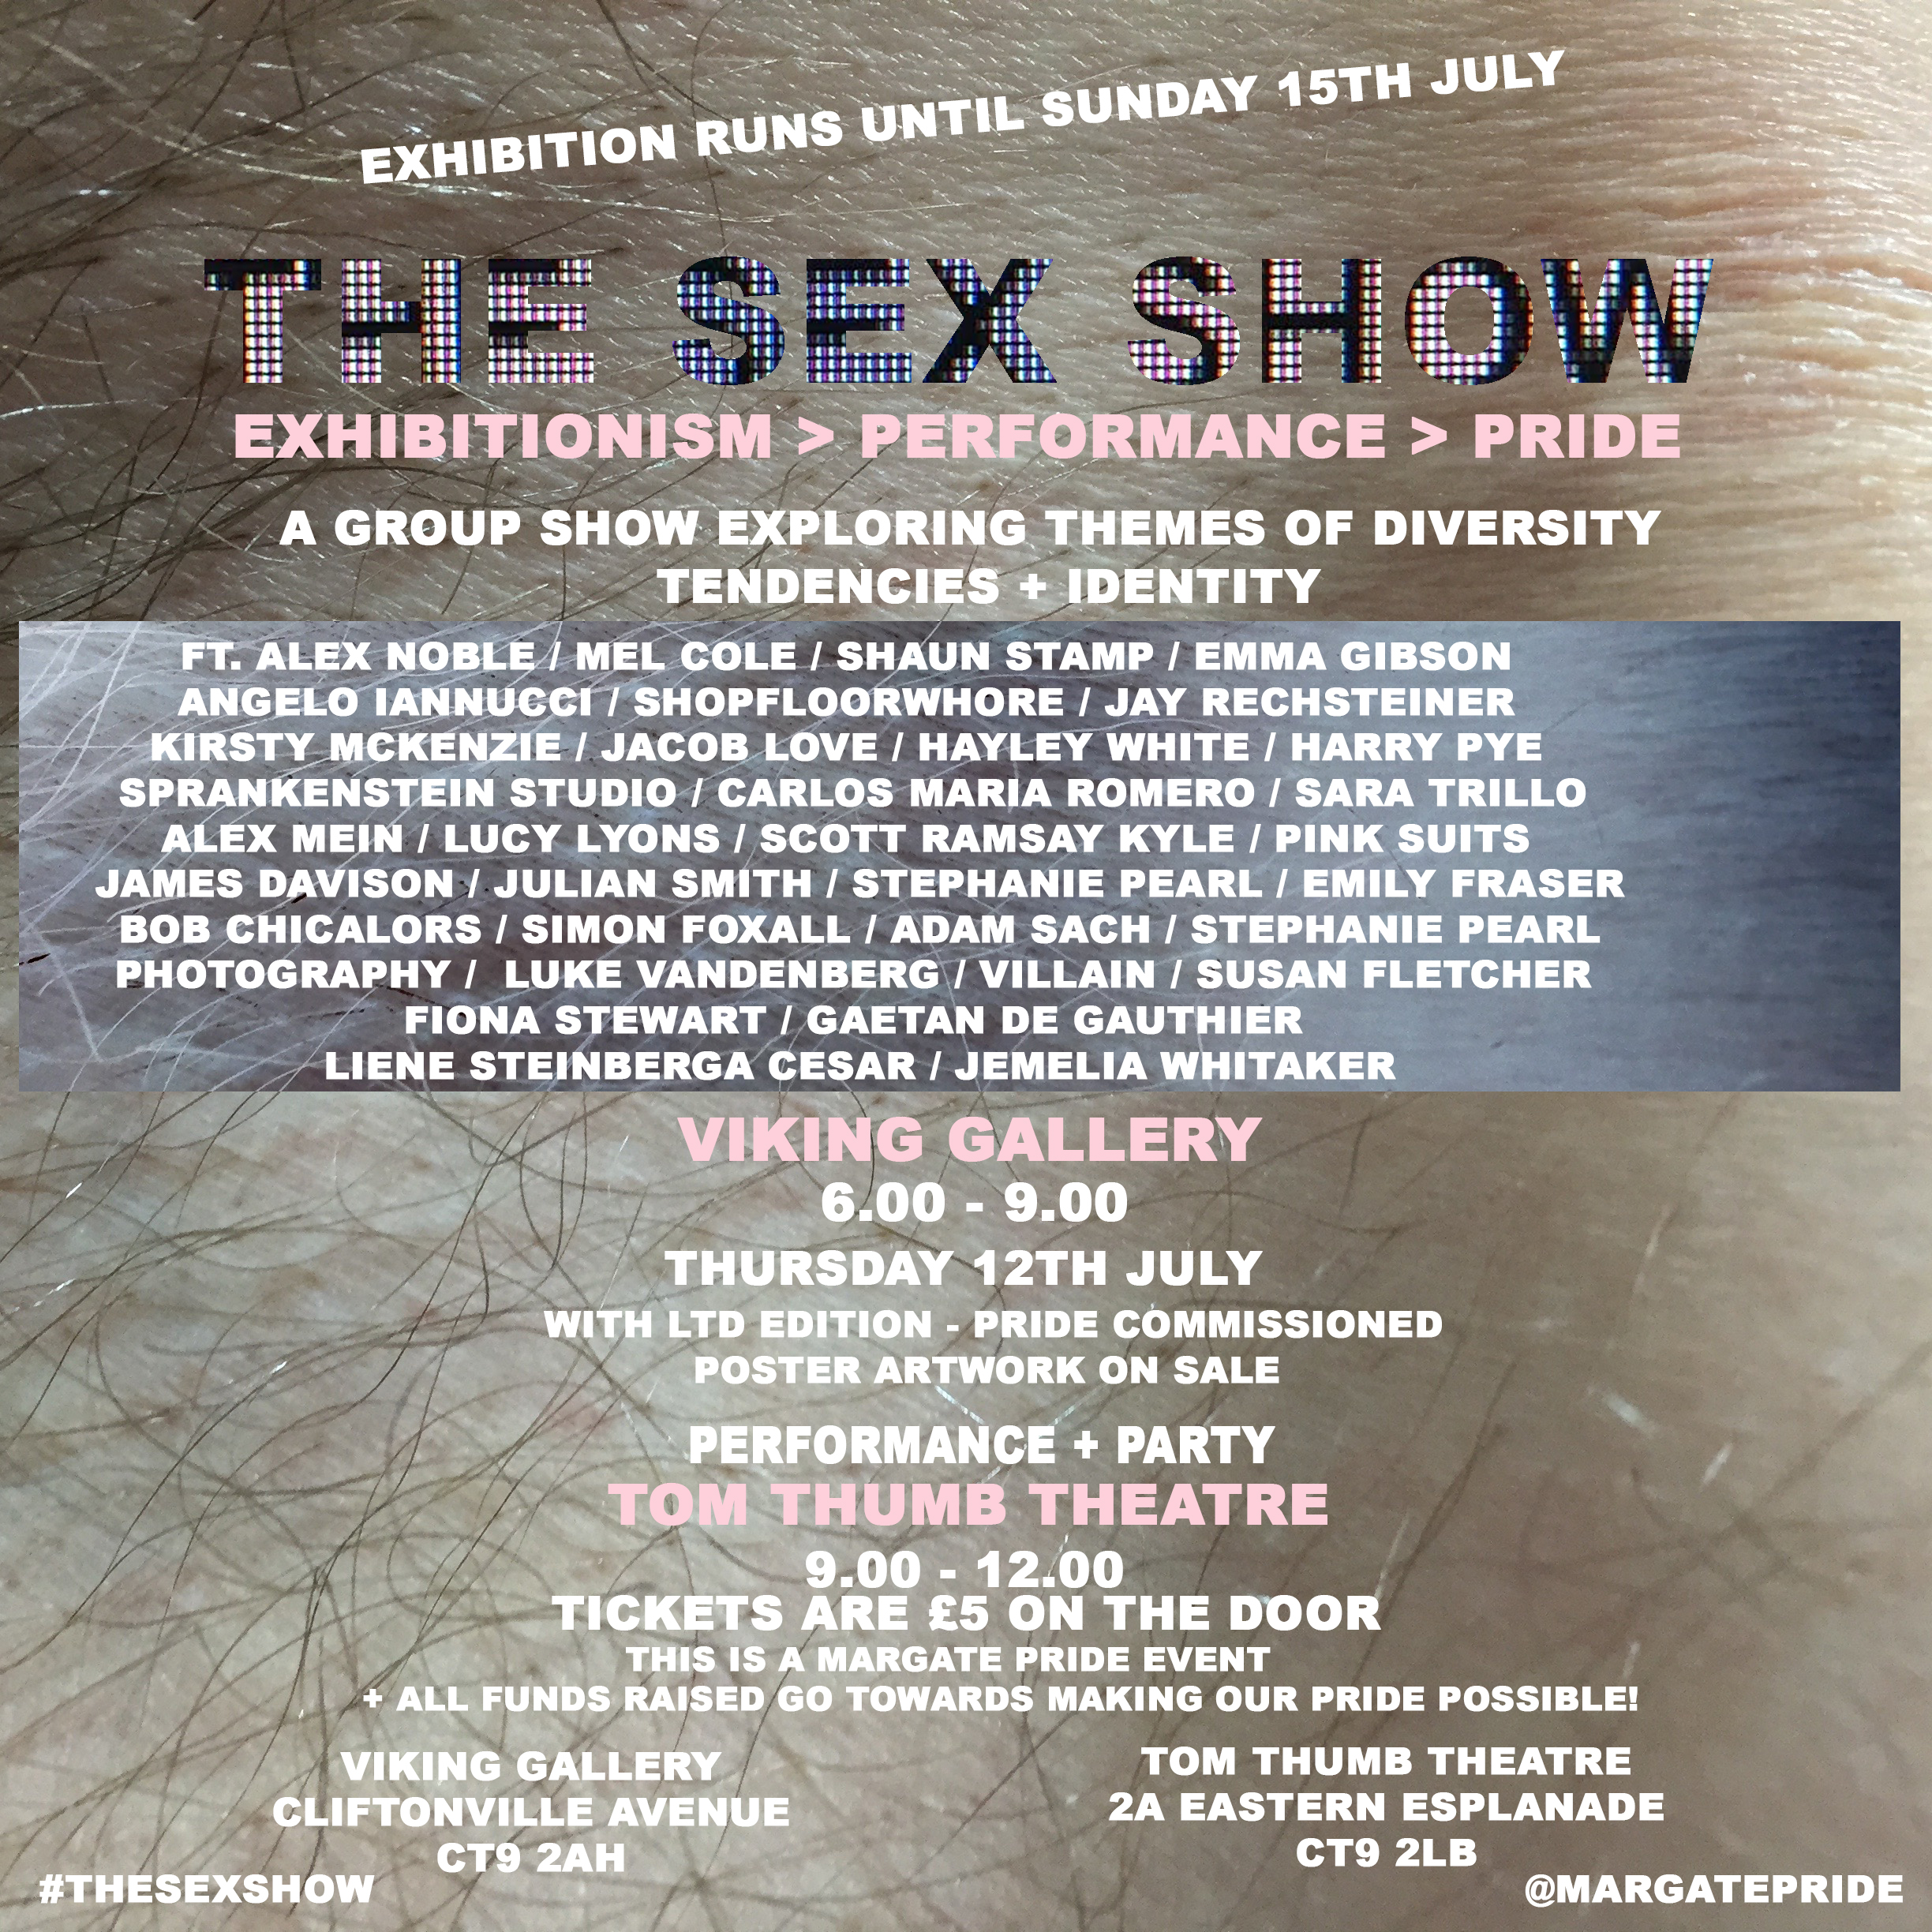 THE SEX SHOW ARTISTS PROMO 3.jpg